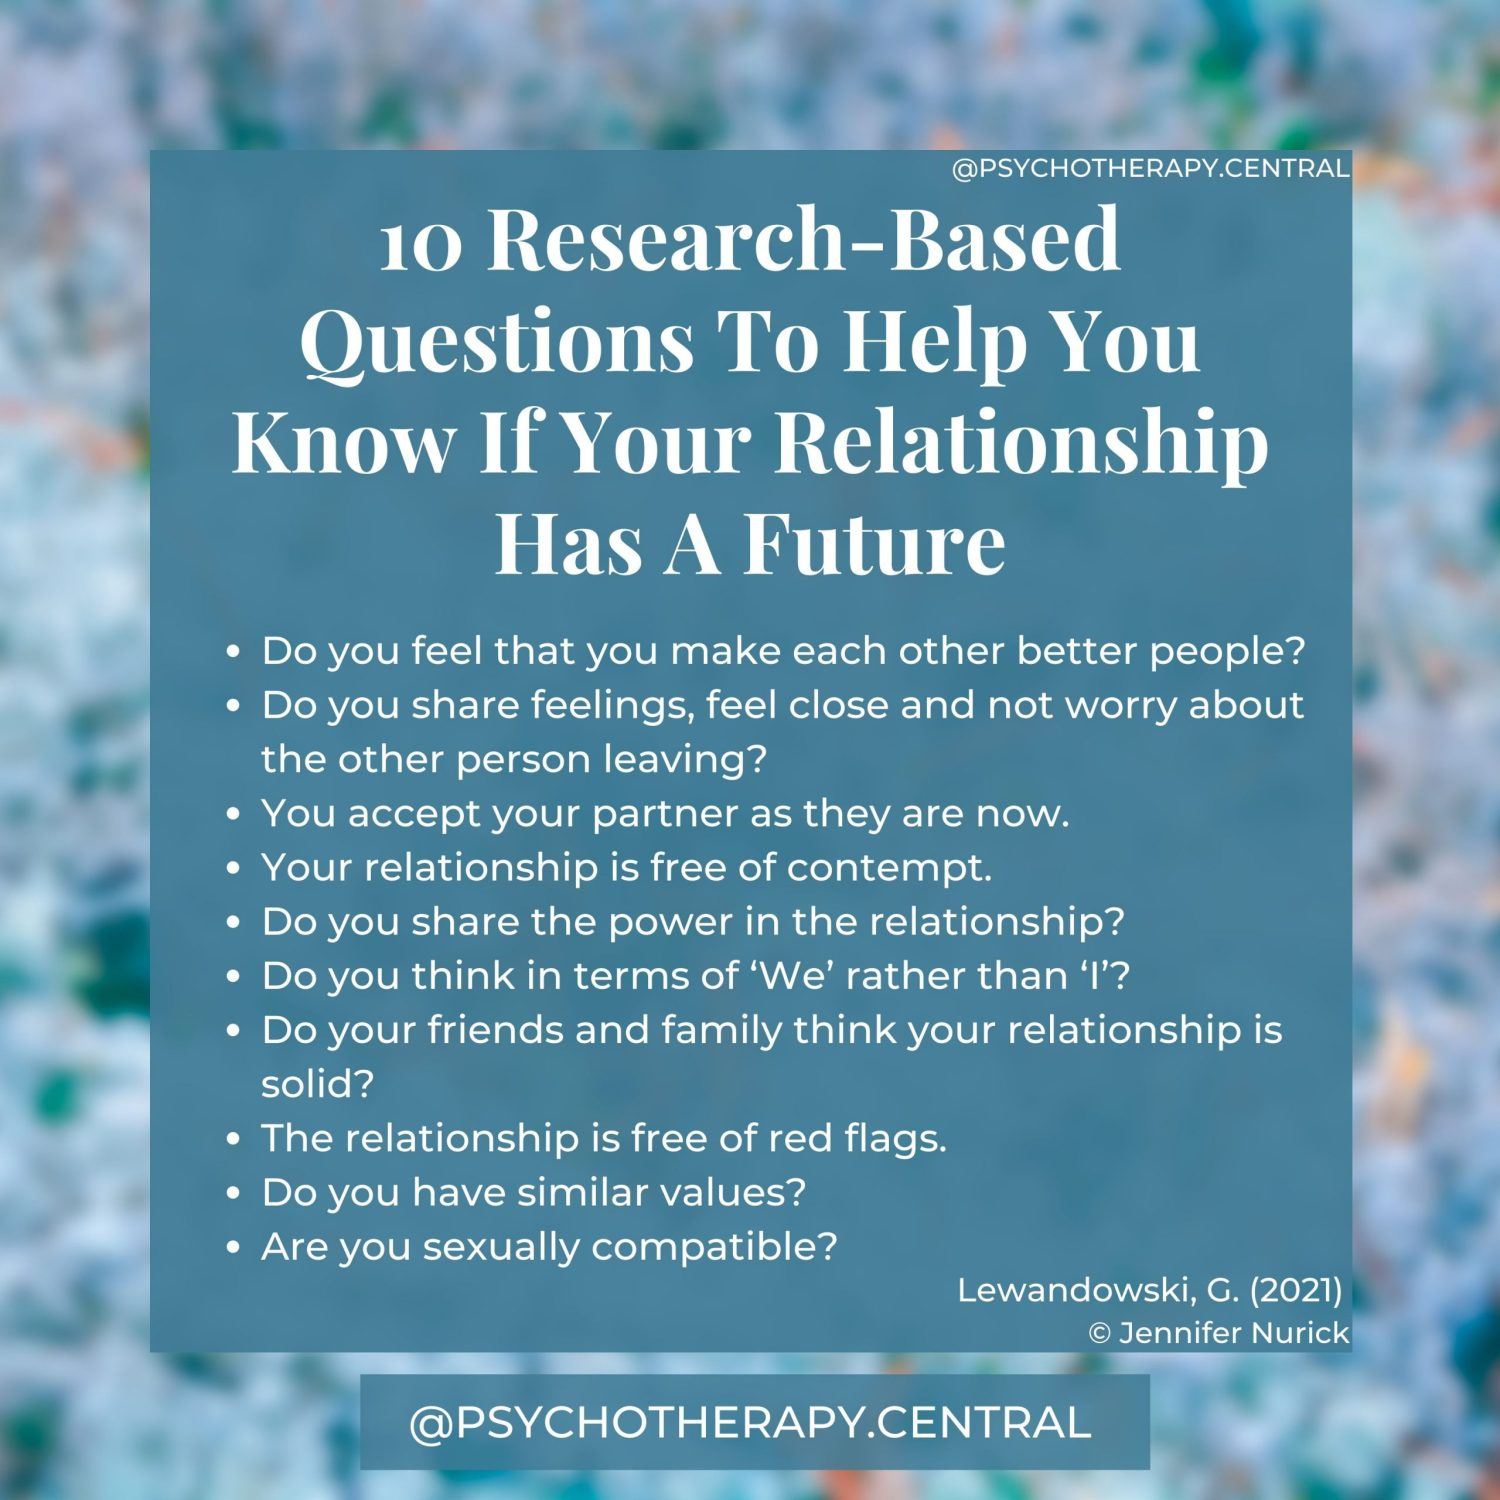 10 Research-Based Questions To Help You Know If Your Relationship Has A Future. Do you feel that you make each other better people? Do you share feelings, feel close and not worry about the other person leaving? You accept your partner as they are now. Your relationship is free of contempt. Do you share the power in the relationship? Do you think in terms of 'We' rather than 'I'? Do your friends and family think your relationship is solid? The relationship is free of red flags. Do you have similar values? Are you sexually compatible?